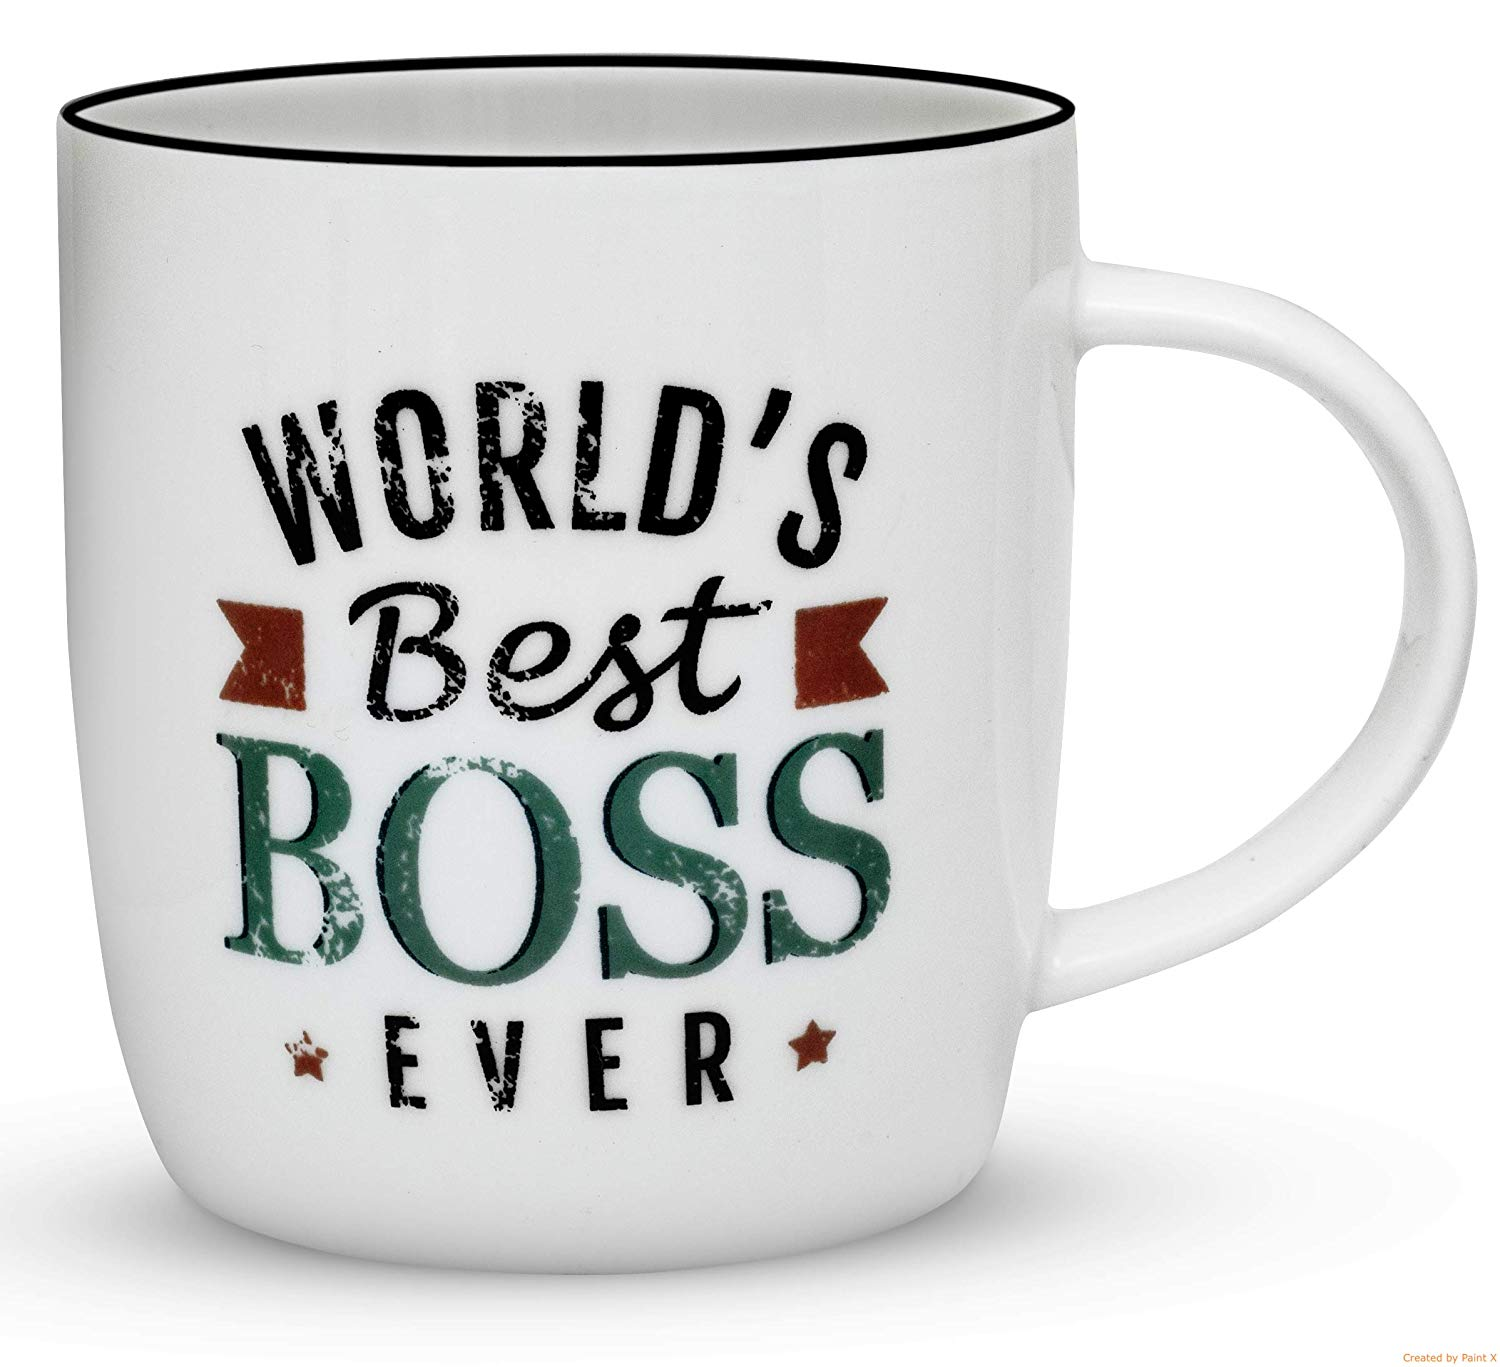 Gifffted Boss Mug Gifts For Best Boss Ever Office Gifts